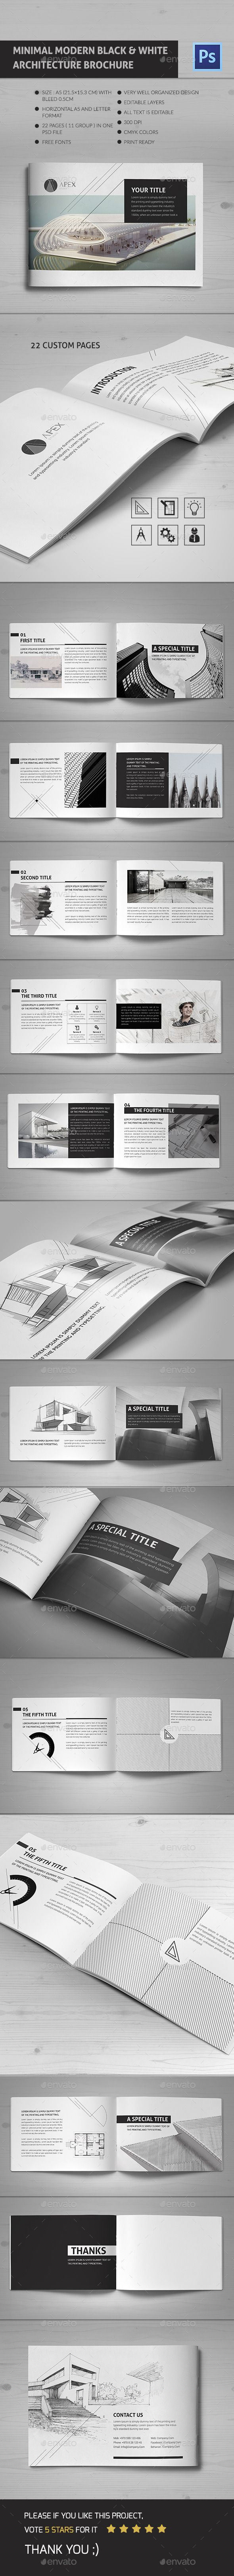 This brochure is an ideal way to showcase your Works. it's Clean, modern and simple design ideal for architecture. It is a horizontal design, available in A5 and Letter paper formats. It contains 22 pages.